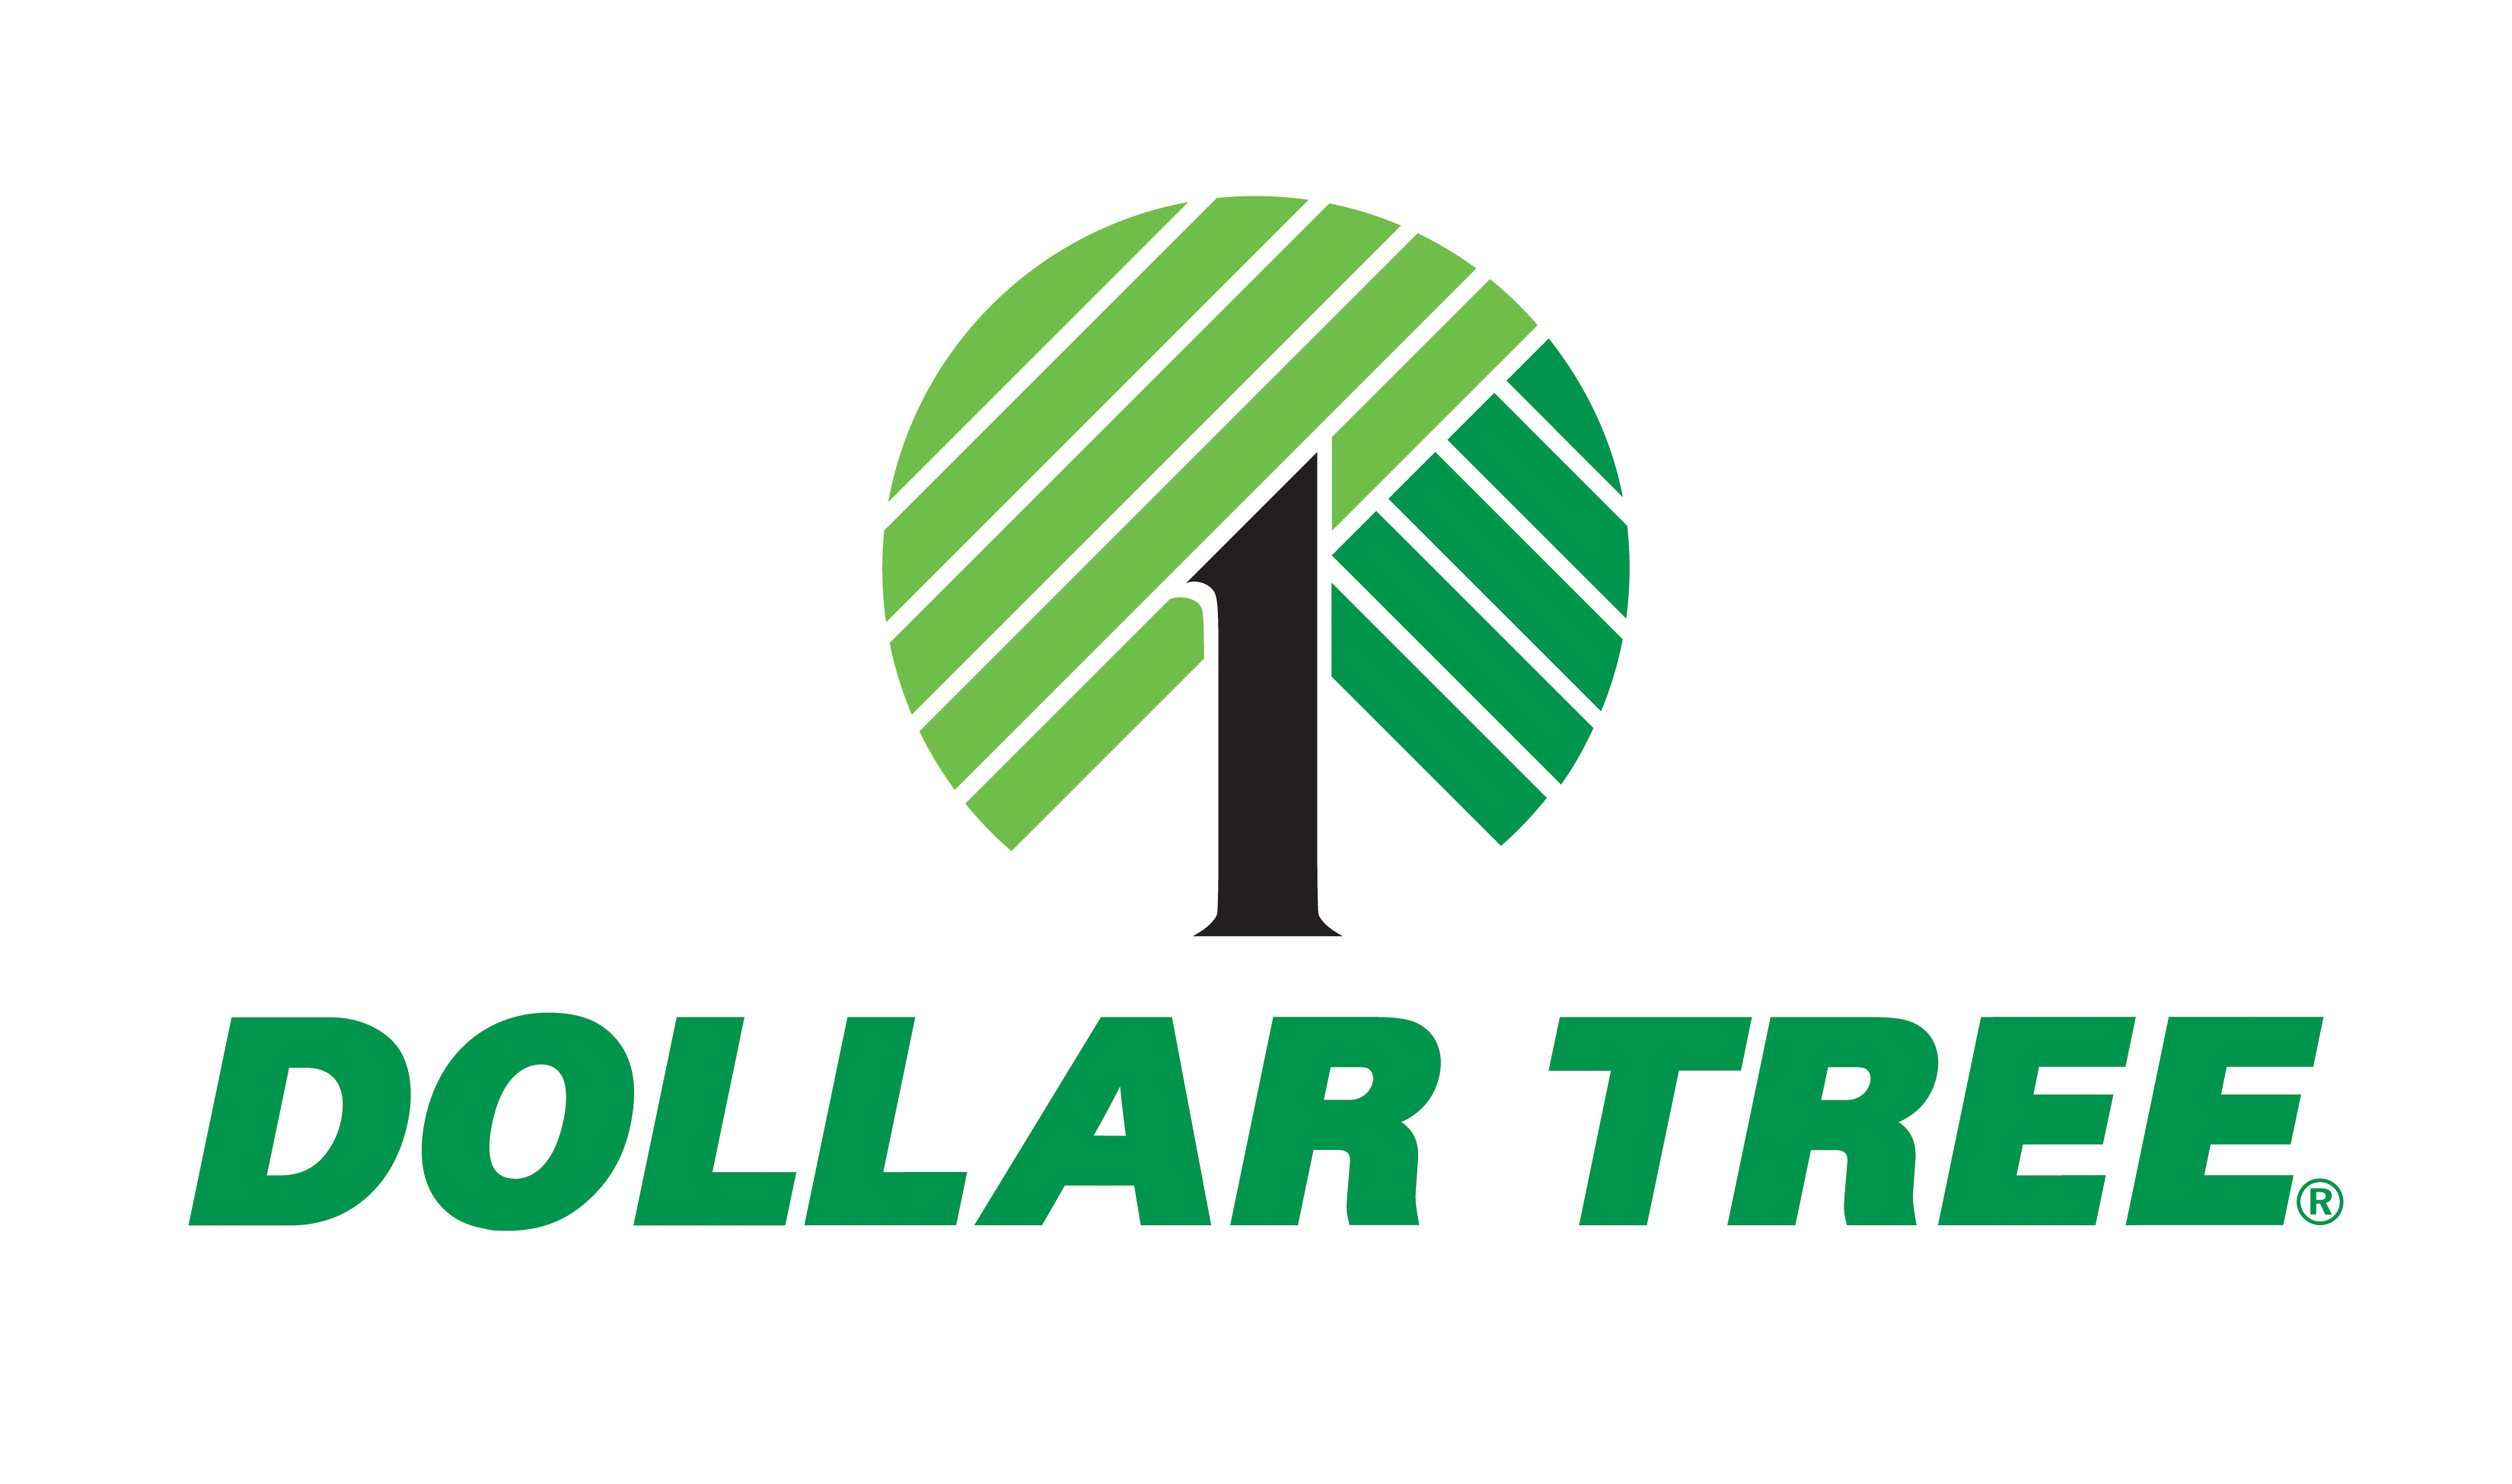 Dollar tree completes divestiture of 330 family dollar stores to dollar express